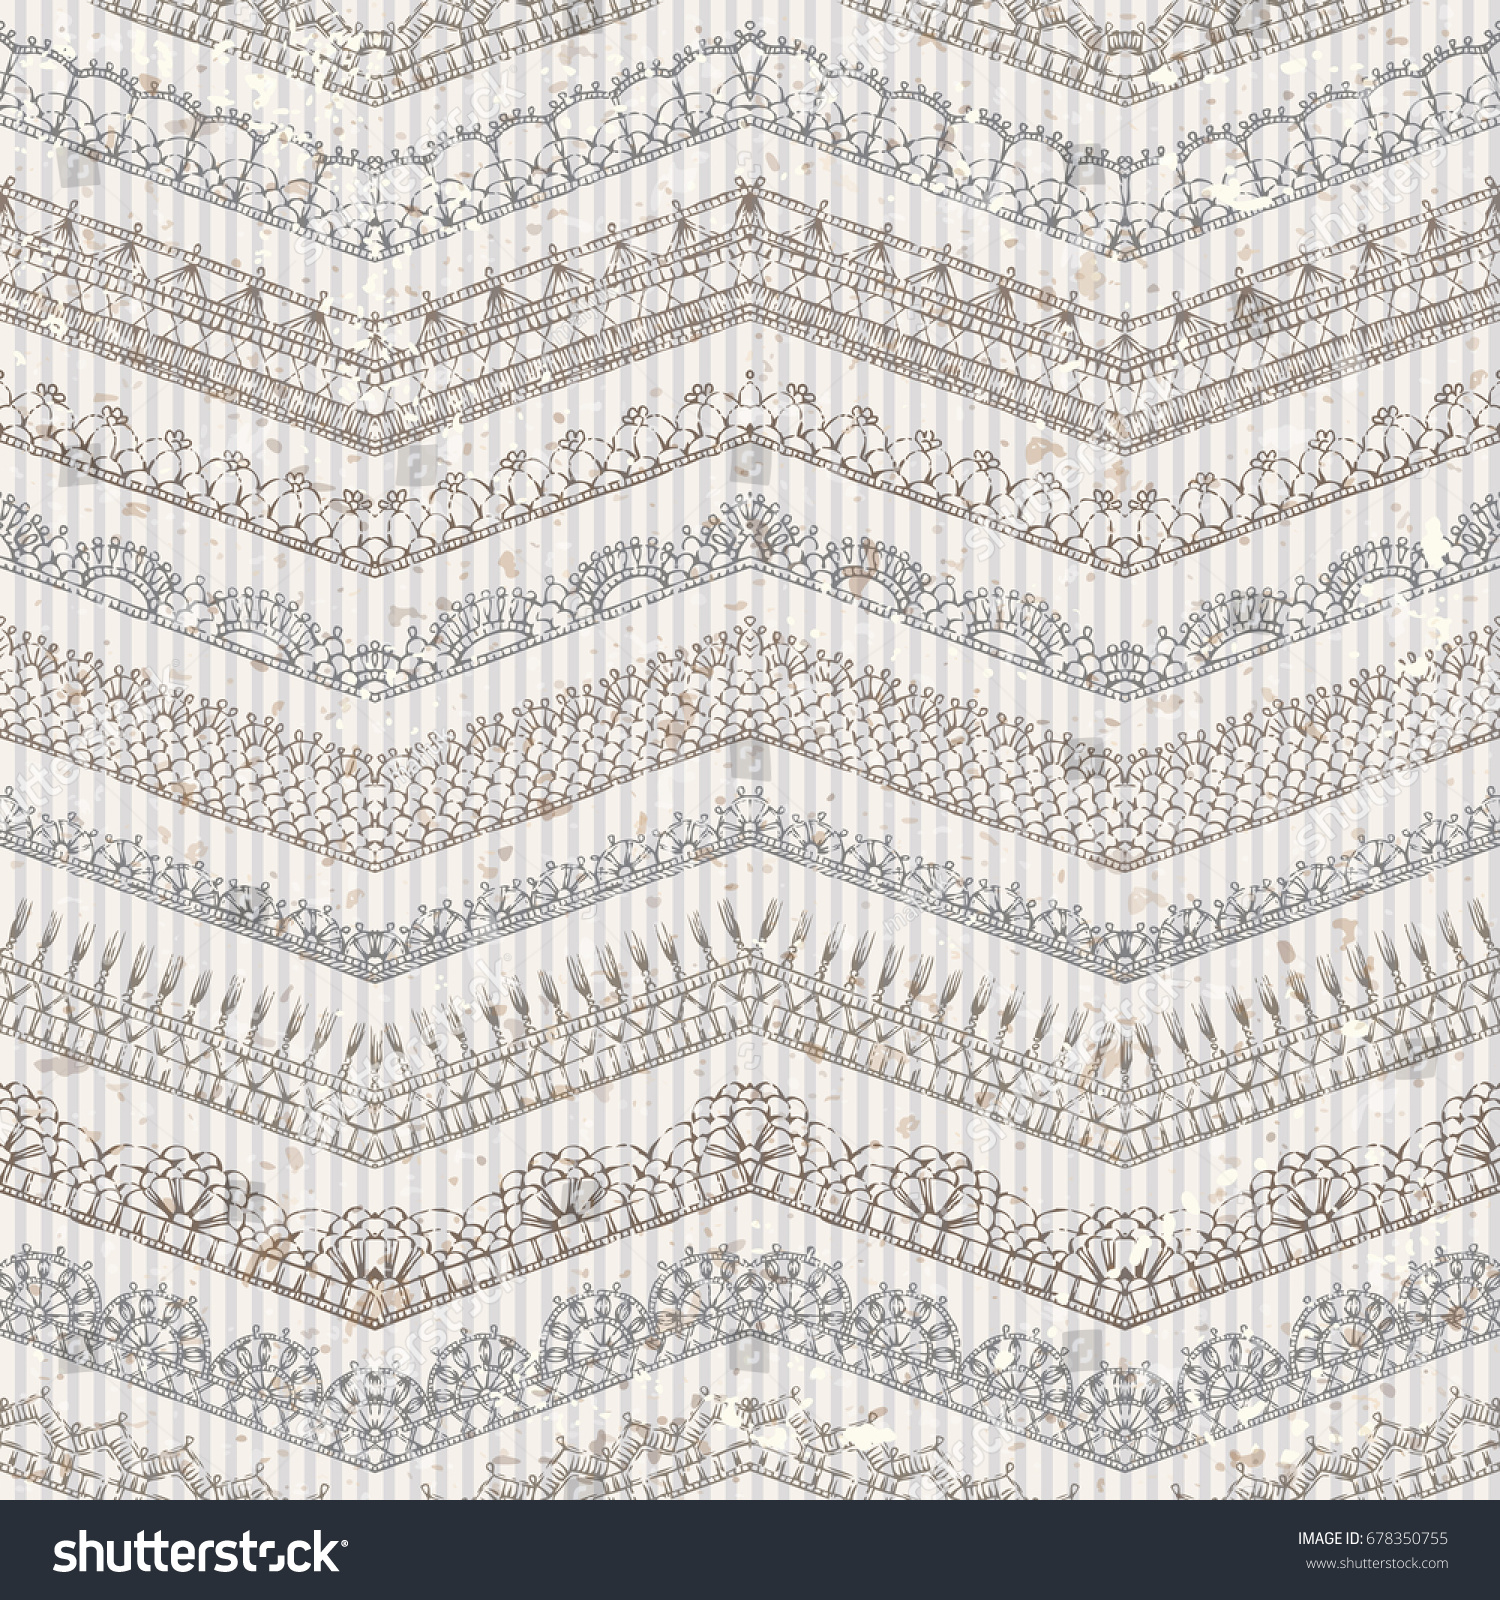 Vector vintage seamless pattern lacy crochet stock vector vector vintage seamless pattern of lacy crochet edges ornate horizontal zigzag edging and border patterns bankloansurffo Gallery